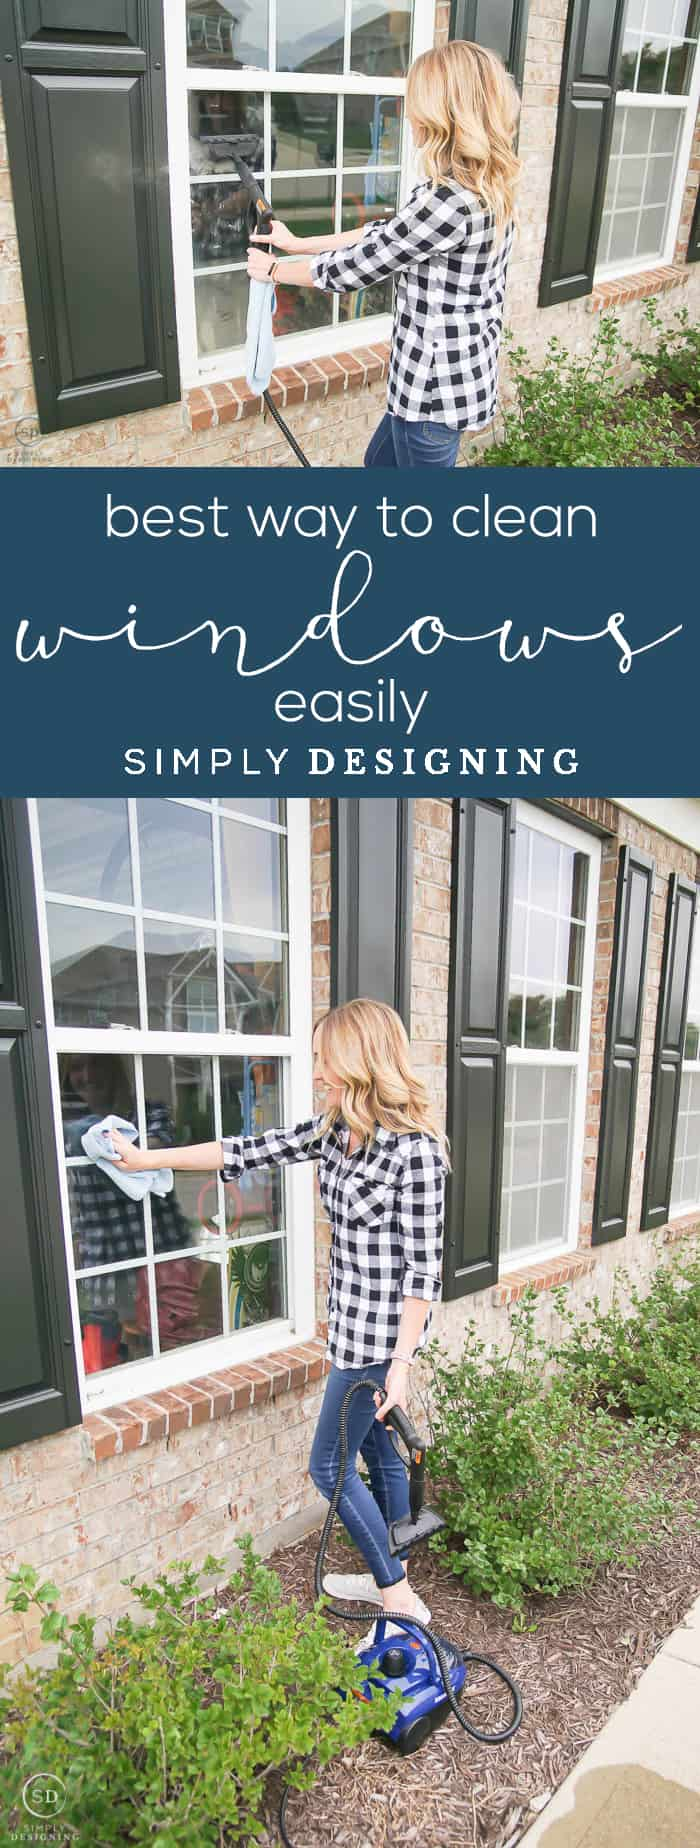 The Best Way to Clean Windows Easily - streak free windows - wash windows - fall cleaning